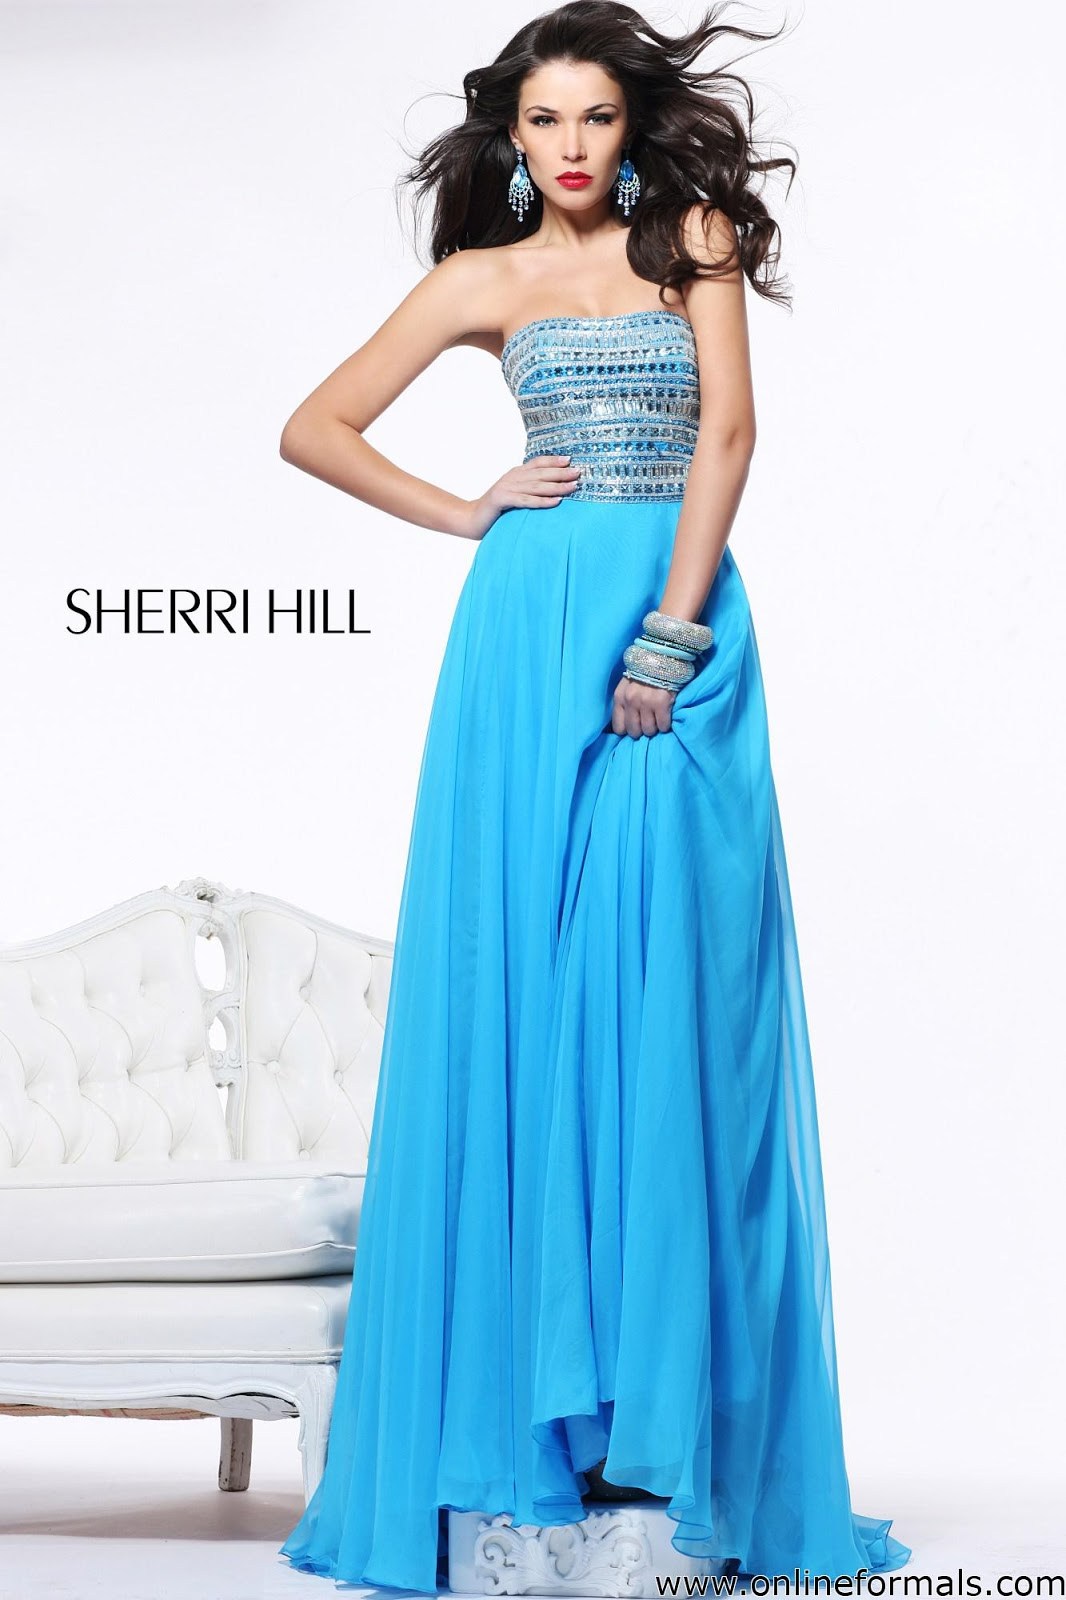 This is an ideal choice for prom 2013